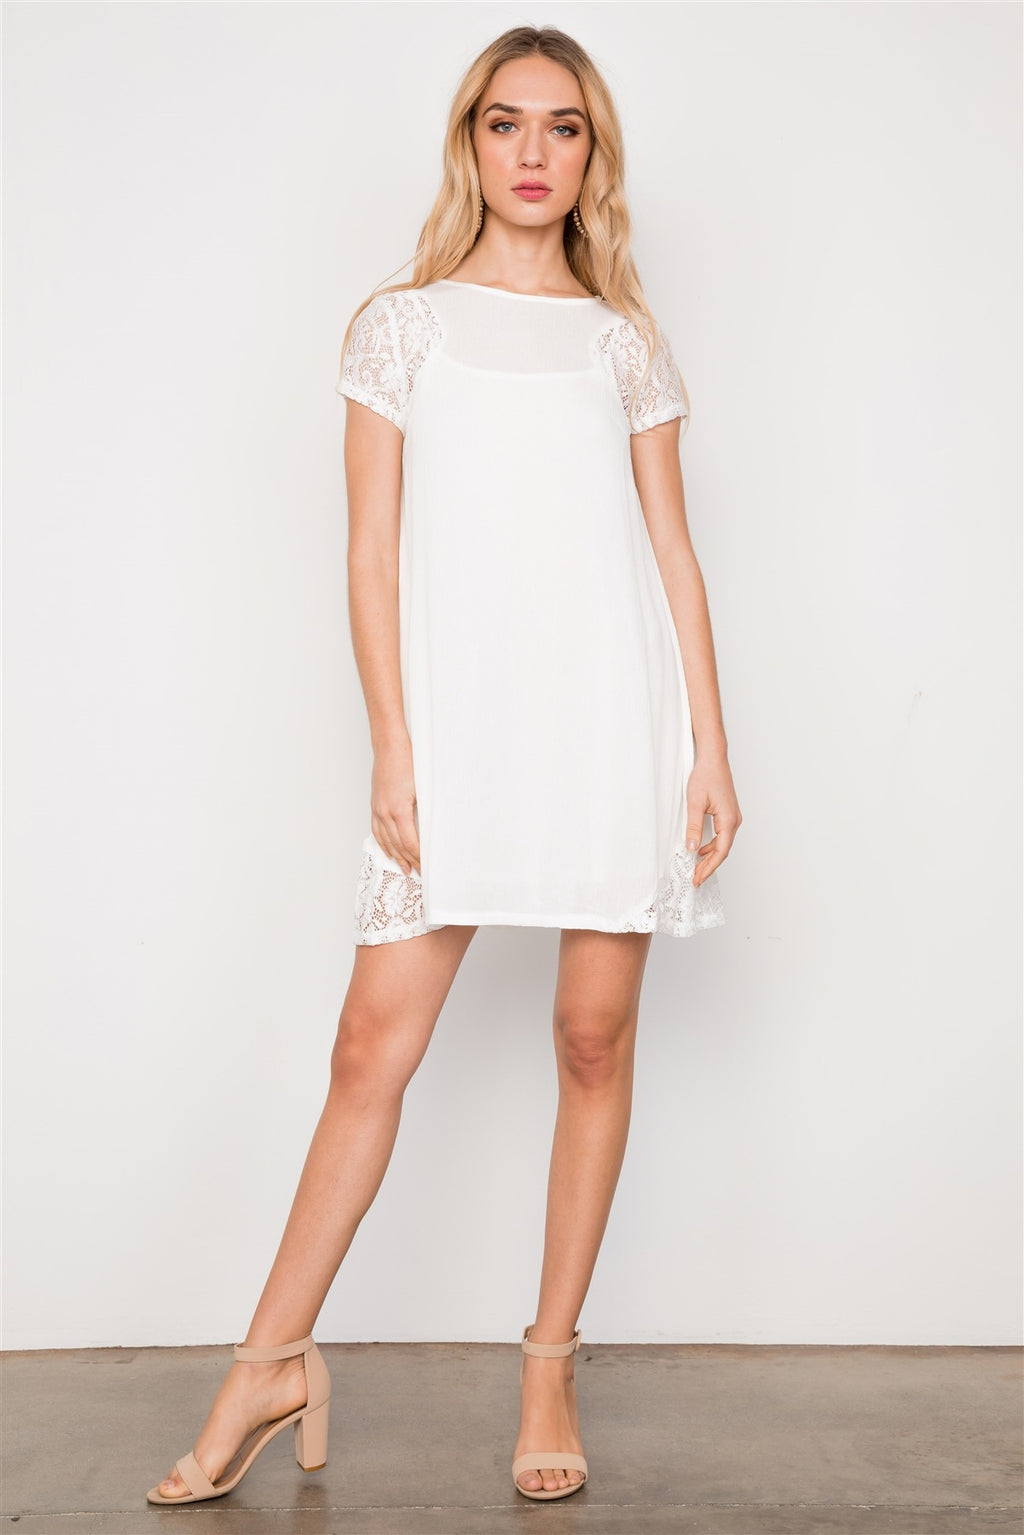 Lace Short Sleeves Dress Tunic Boho